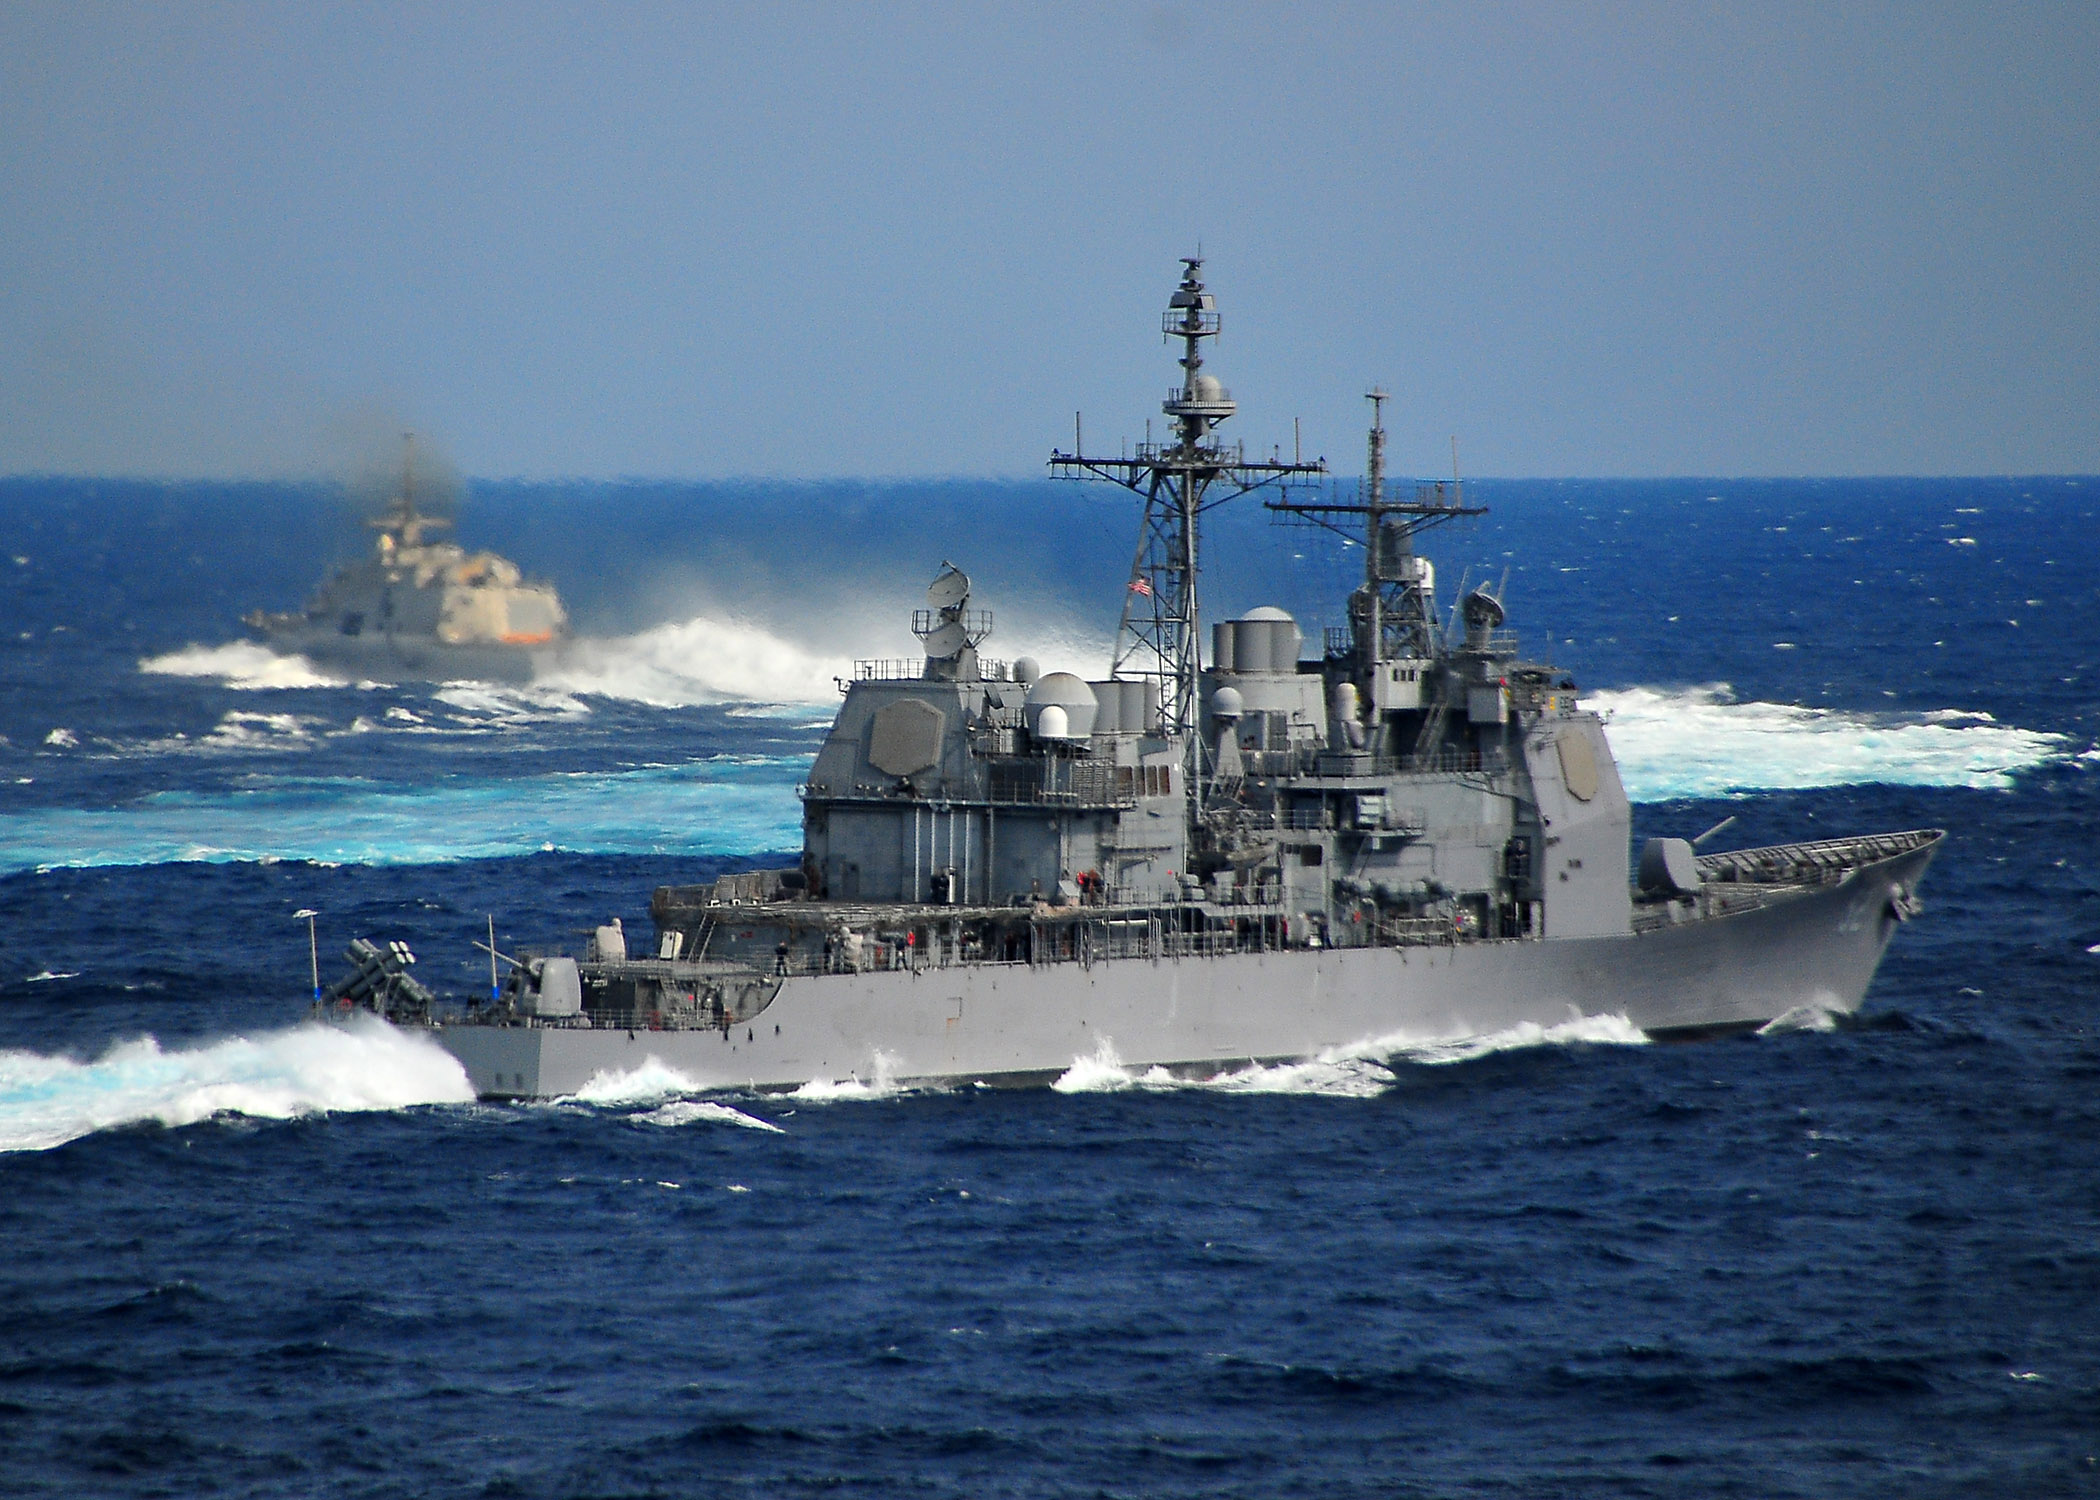 Freedom lcs 1 and the nimitz class aircraft carrier uss carl vinson